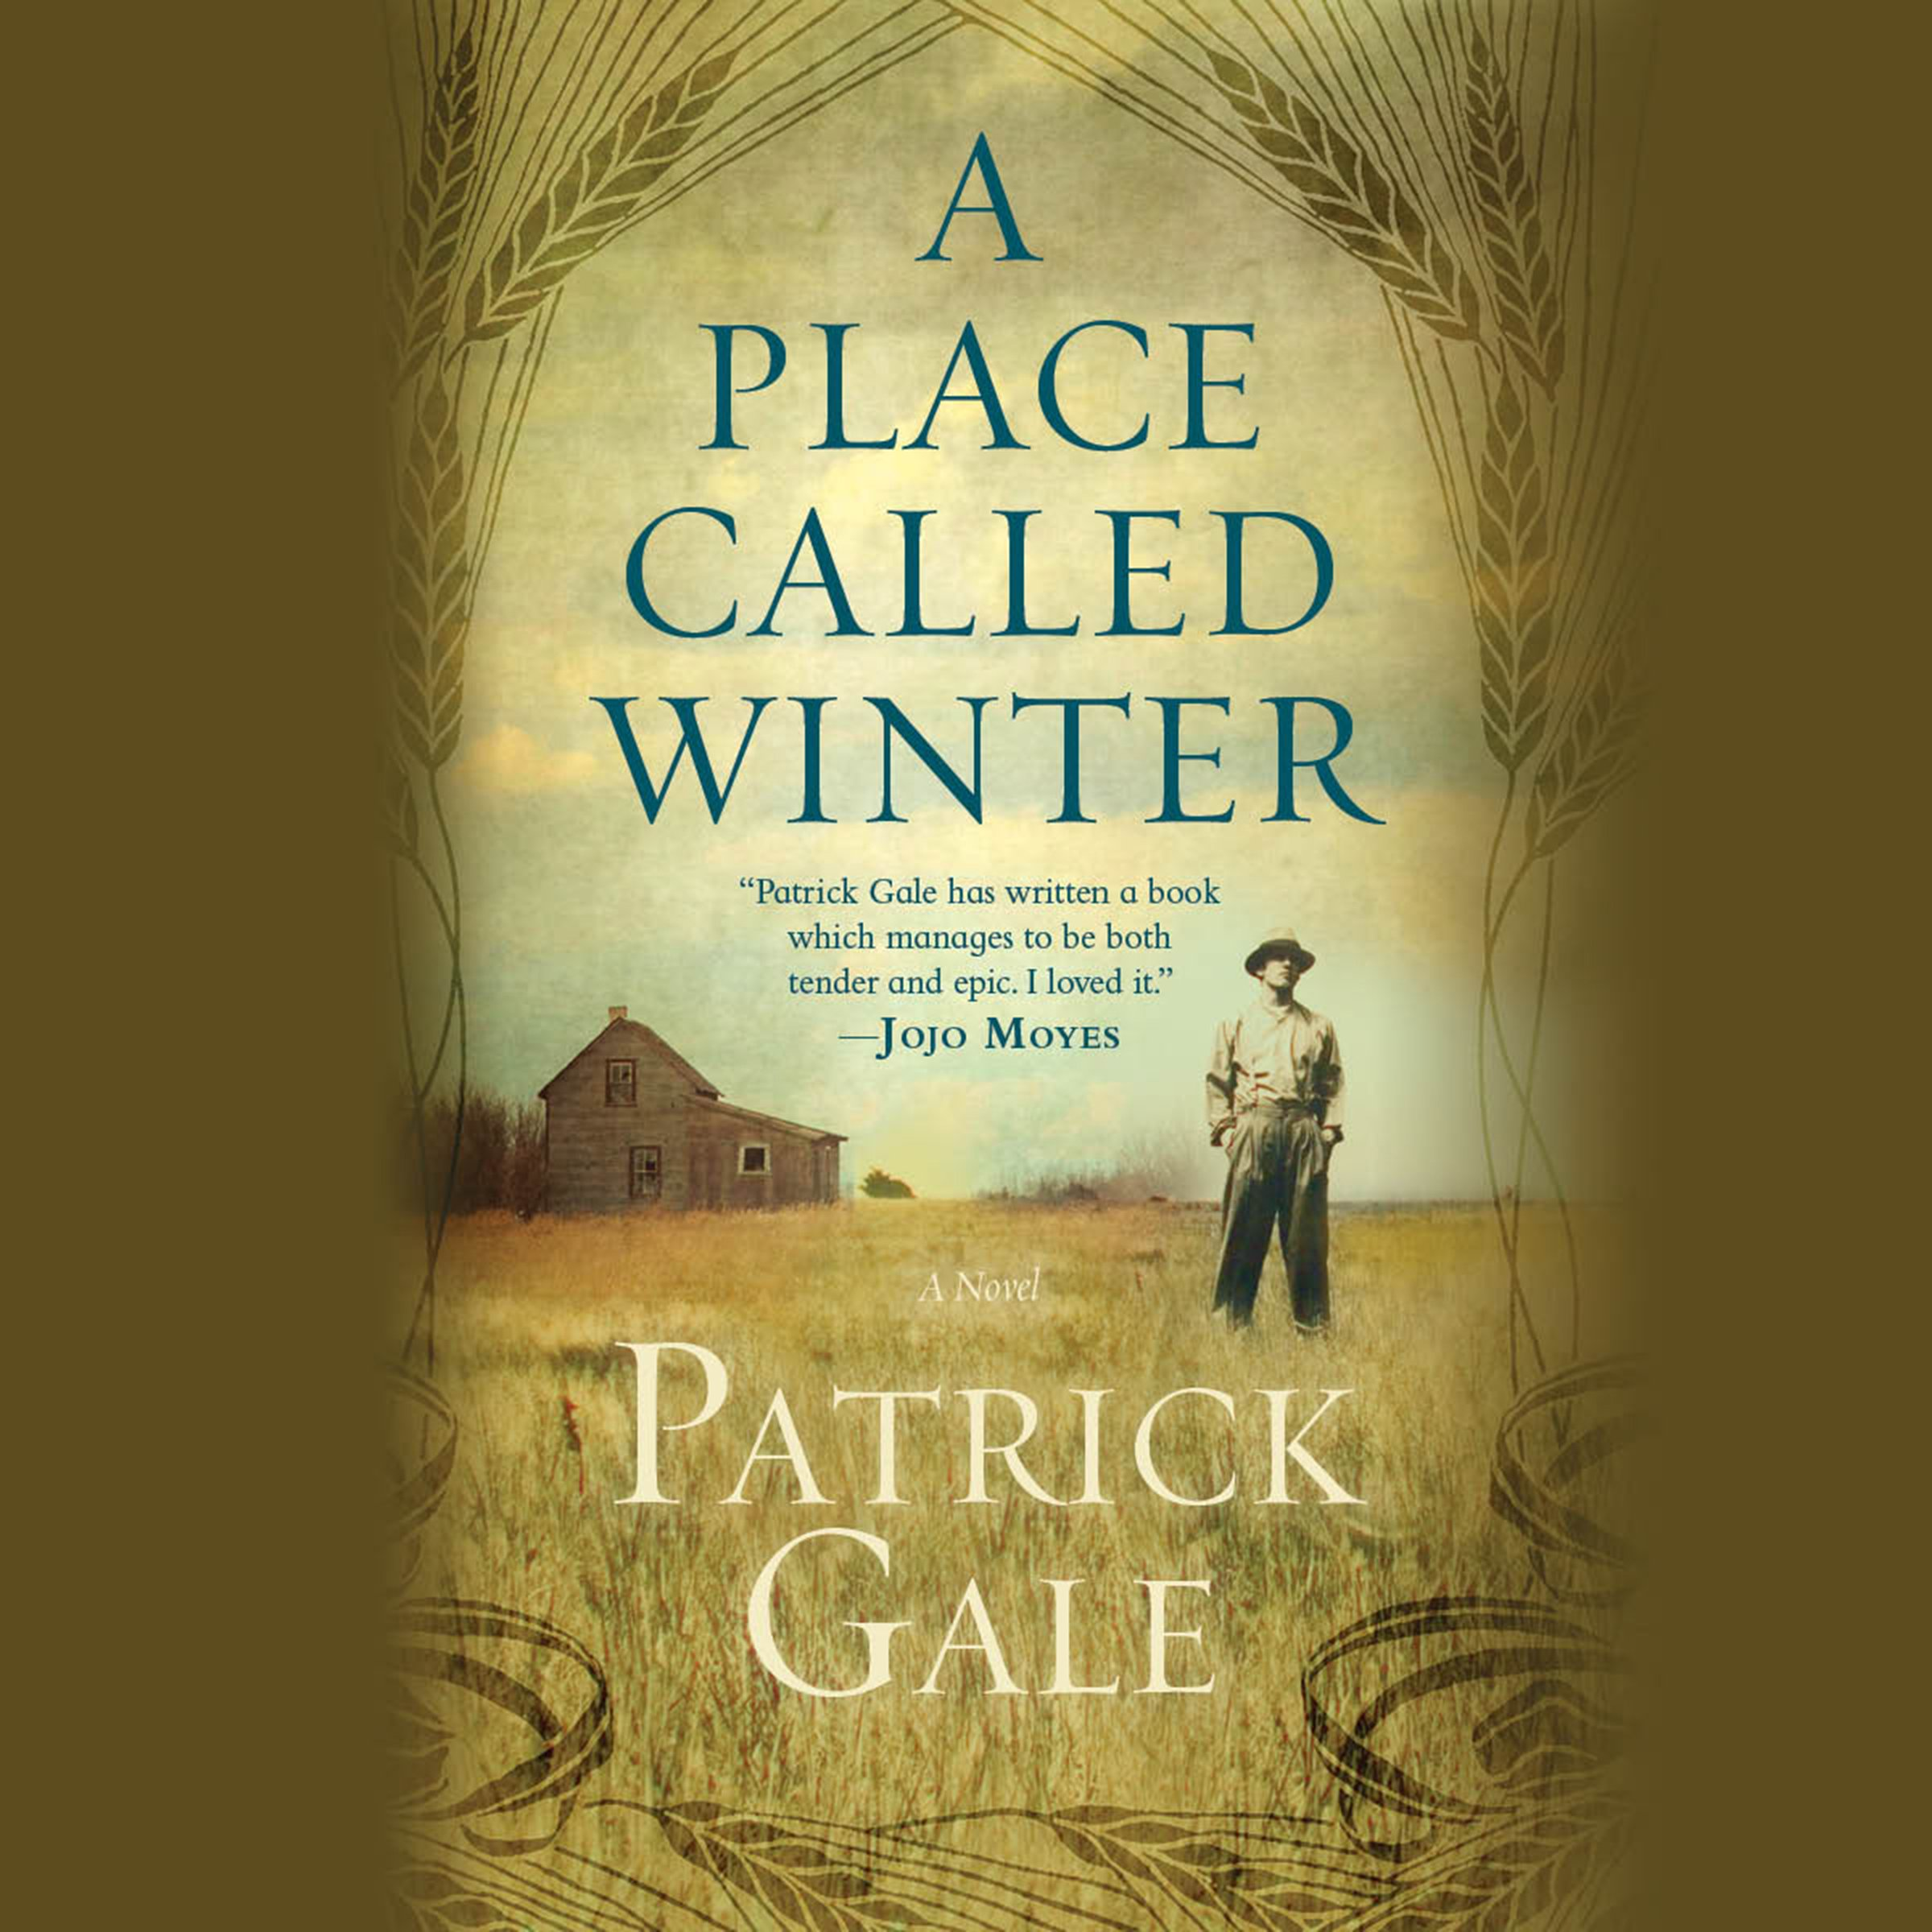 A Place Called Winter